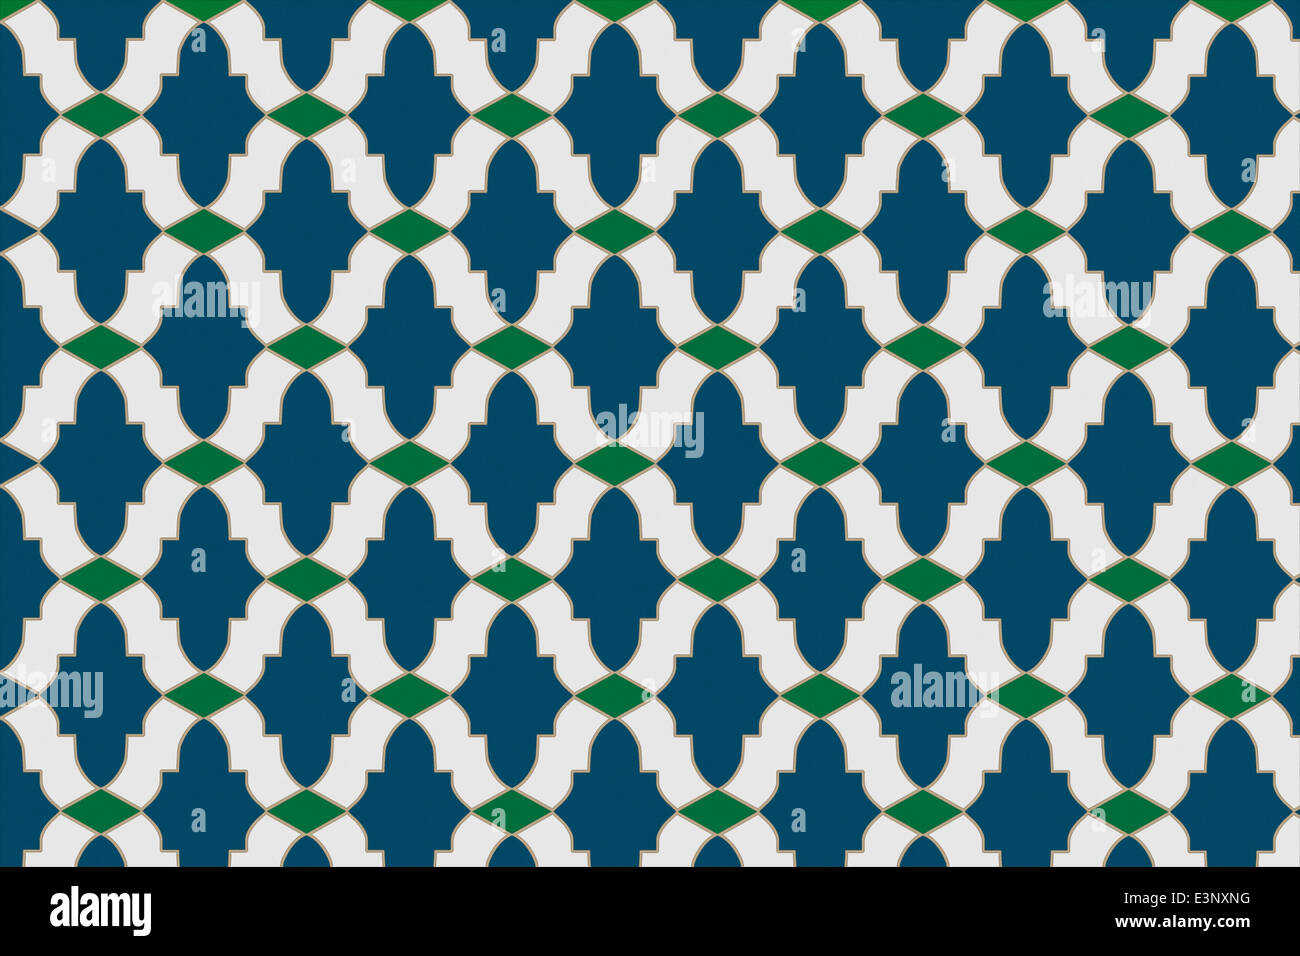 Area of mosaic tiles with three basic tile shapes to create a ...